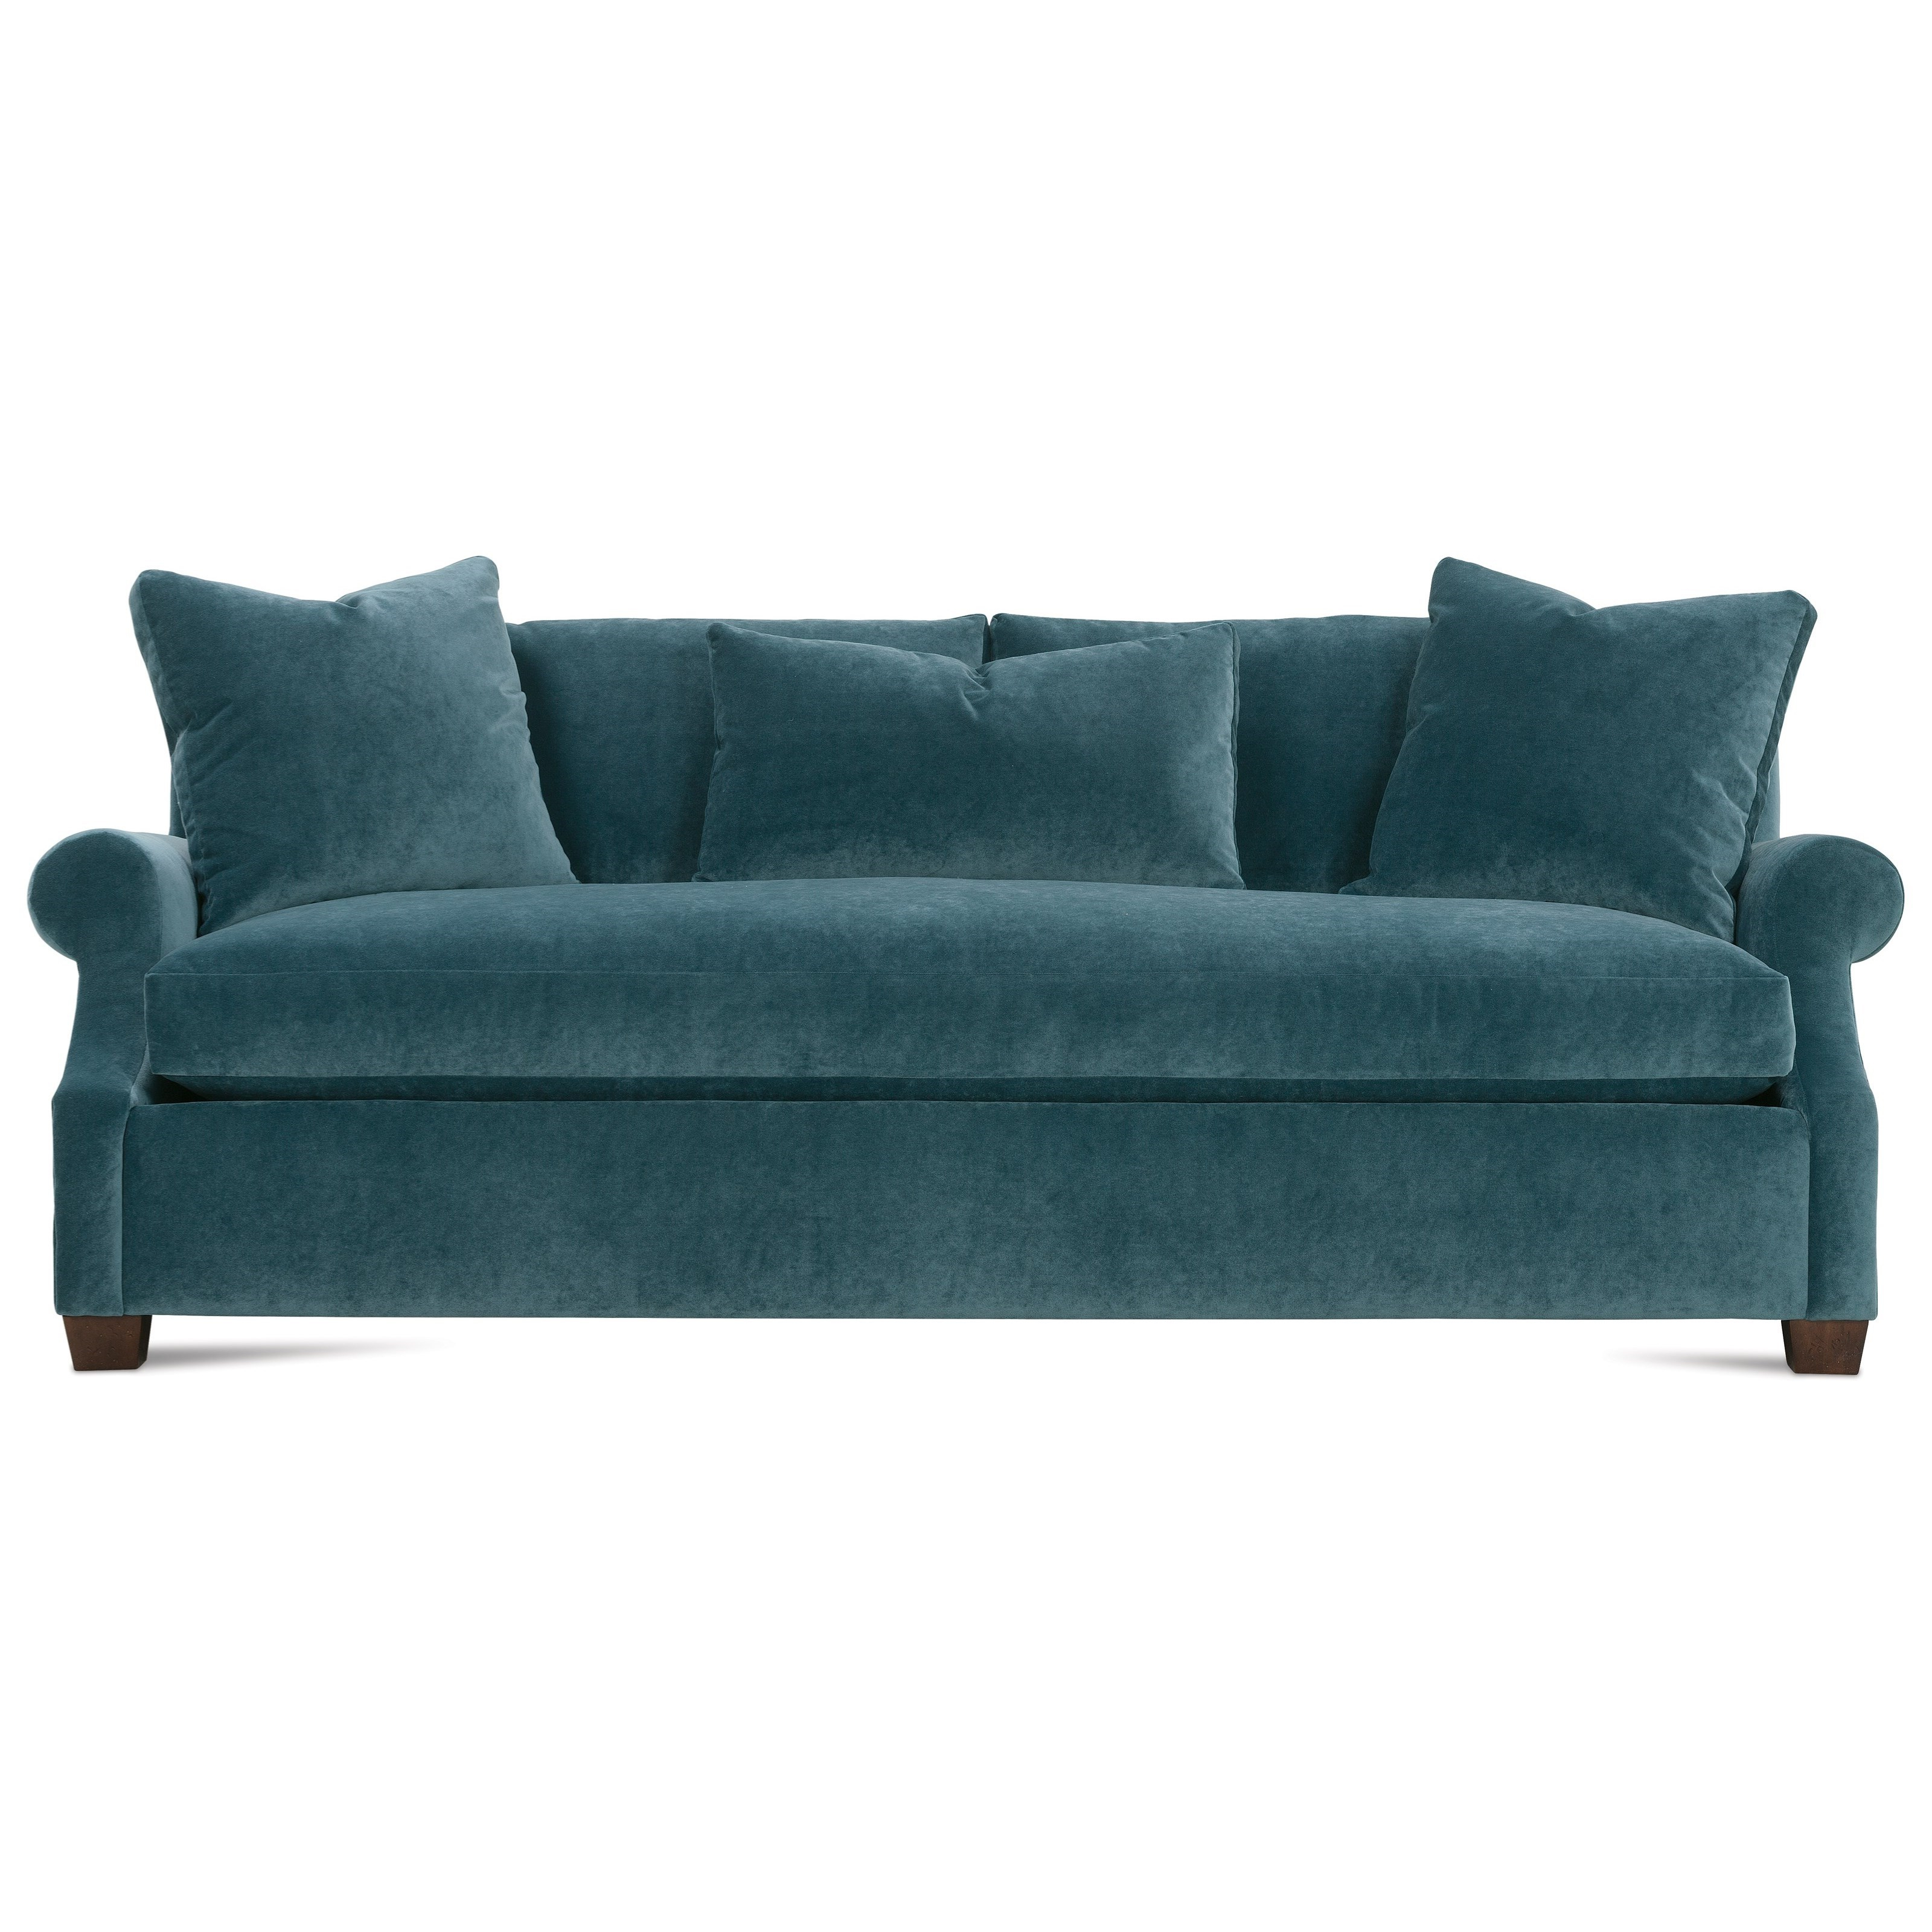 Bristol Loveseats With Cushions Throughout Best And Newest Robin Bruce Bristol Contemporary 85'' Sofa With Bench (View 4 of 20)